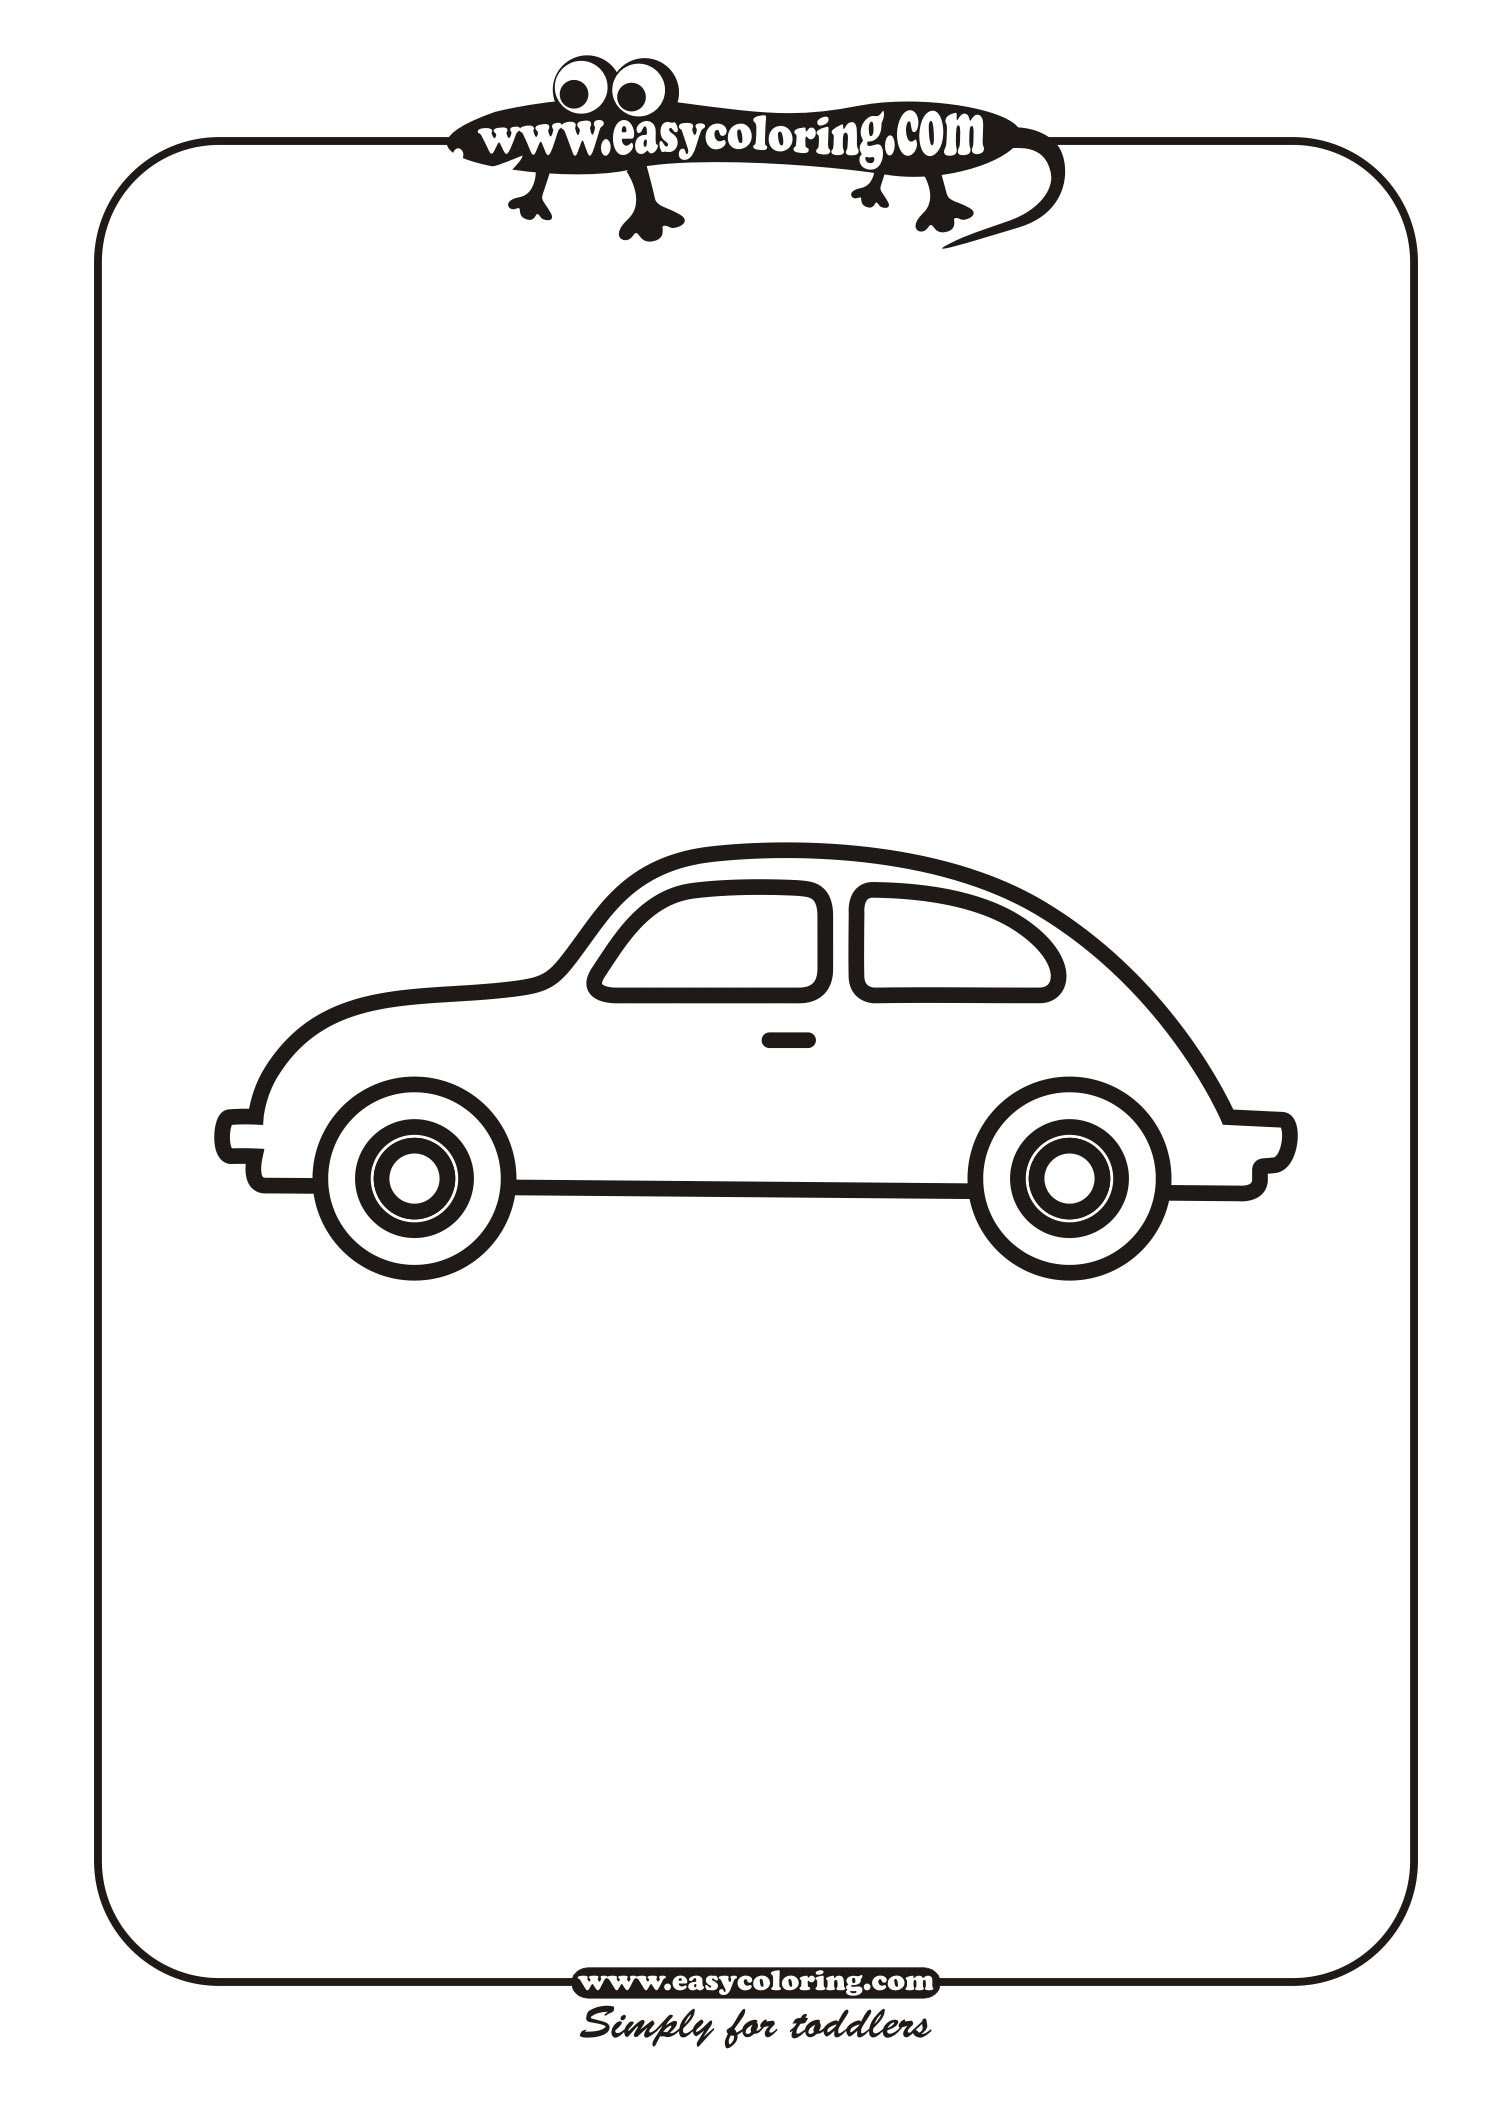 Clip Art Simple Car Coloring Pages car four simple cars easy coloring for toddlers cars